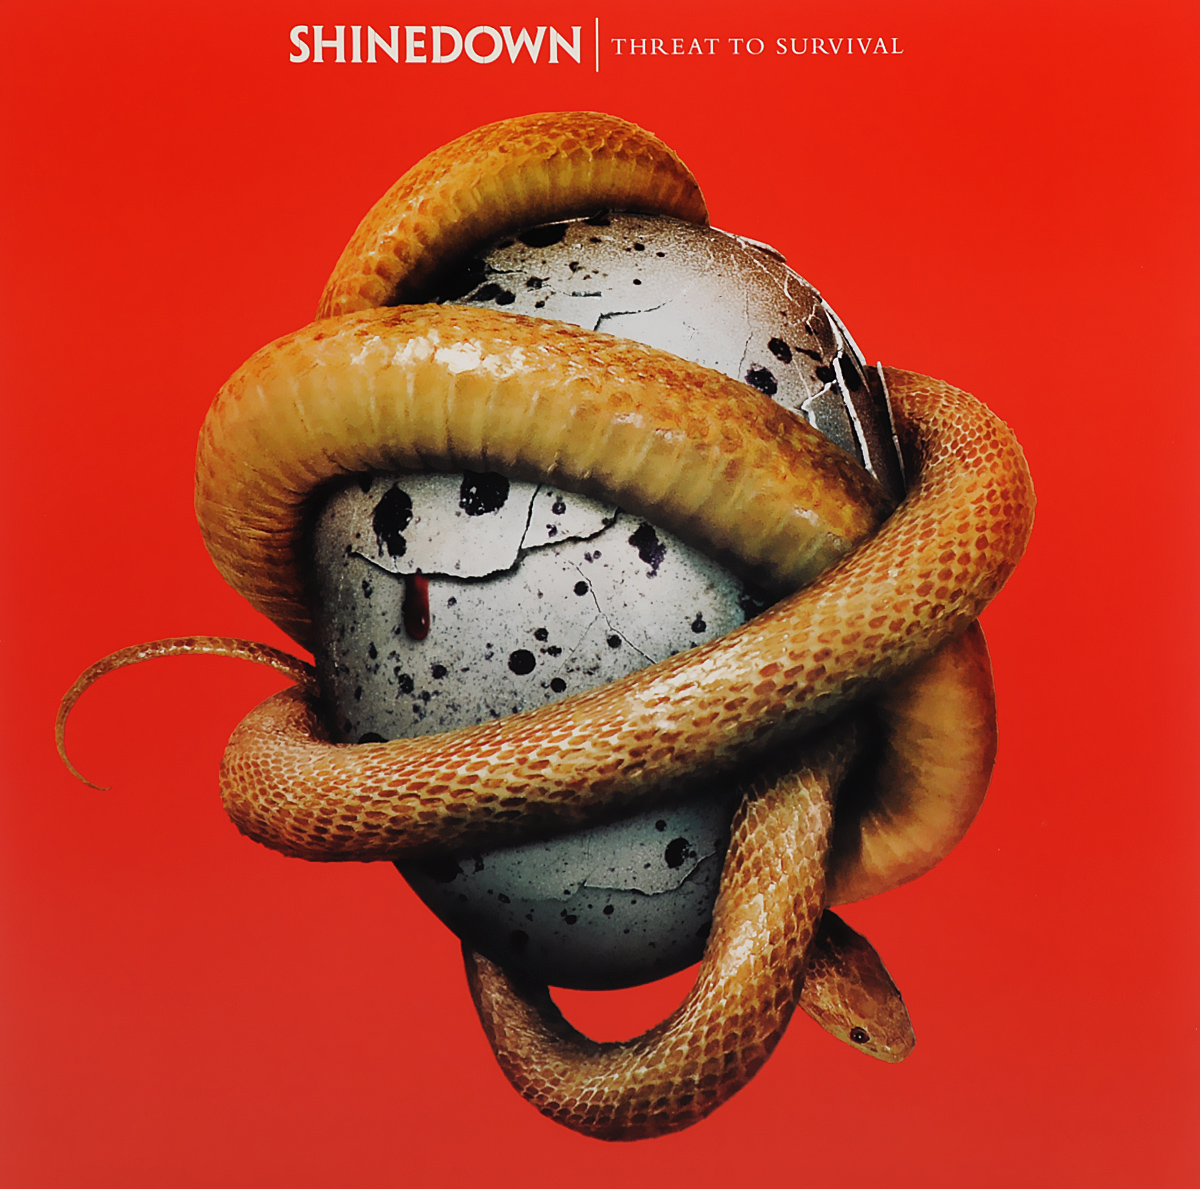 цена на Shinedown Shinedown. Threat To Survival (LP + CD)